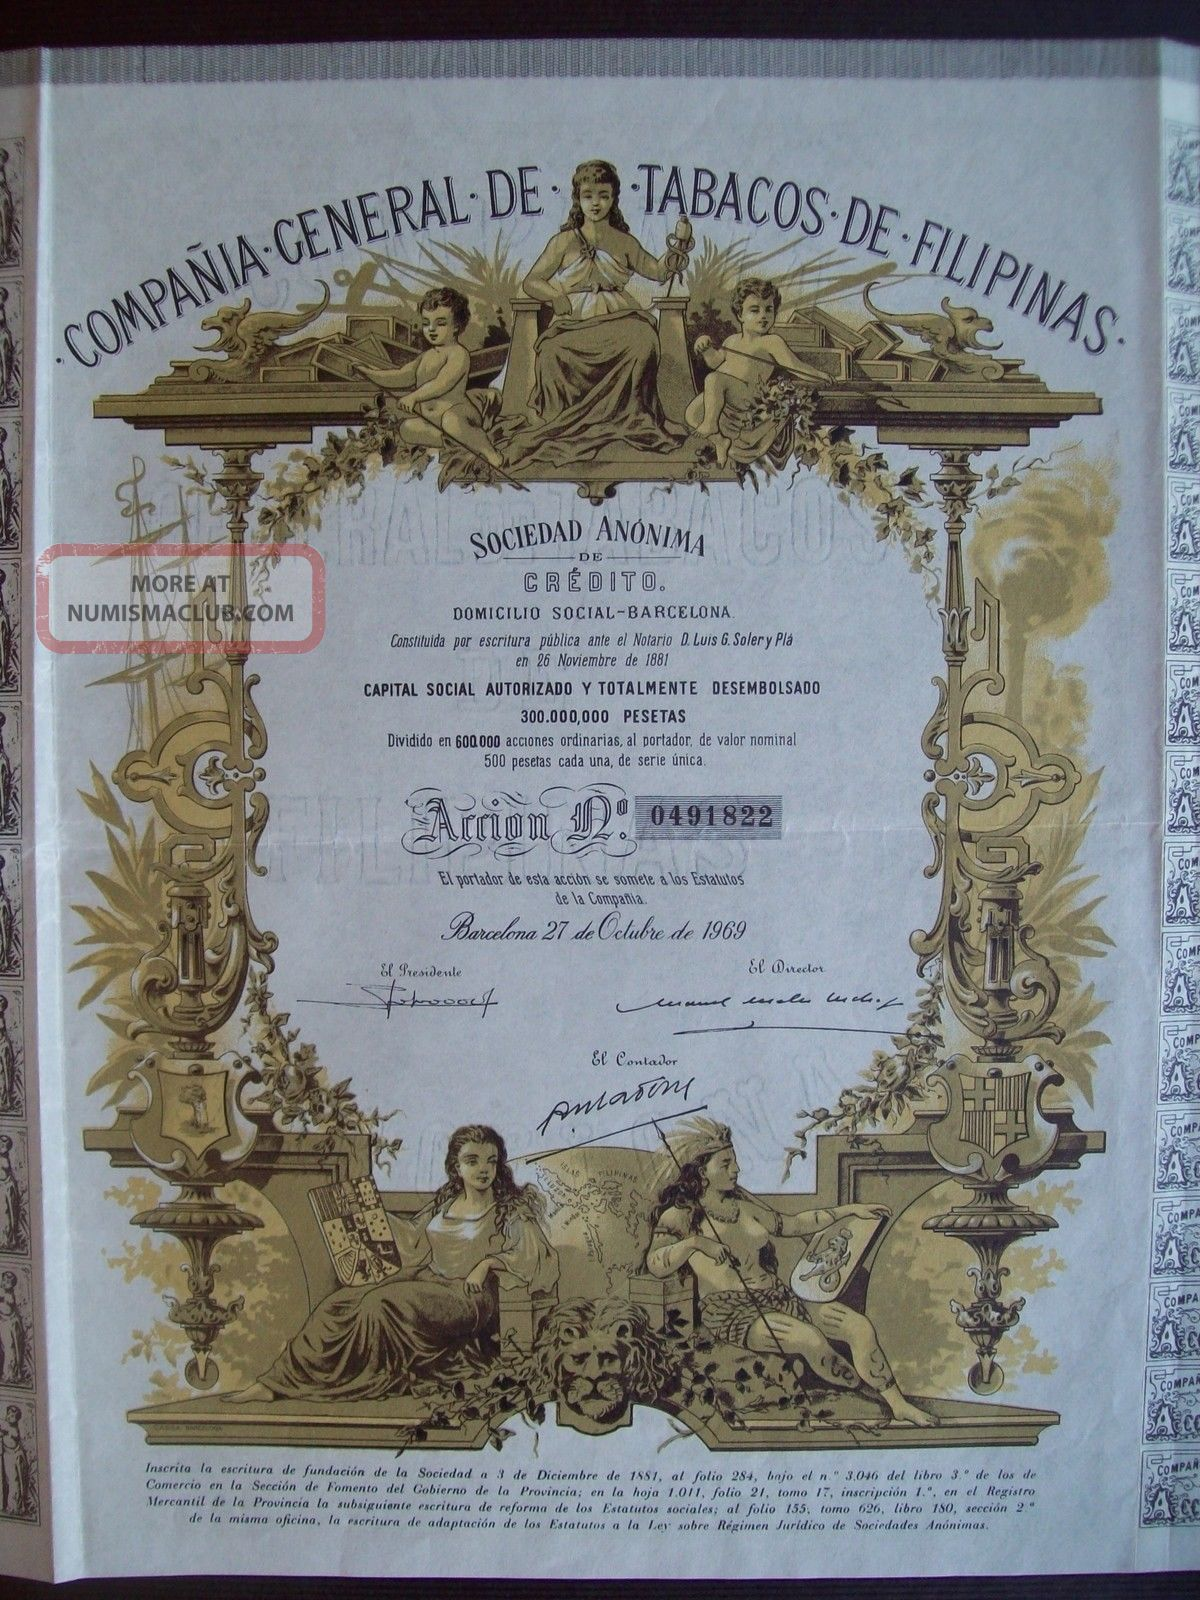 Spain 1969 Illustrated Bond With Coupons - Co Tabacos De Filipinas Tabac.  R3322 World photo